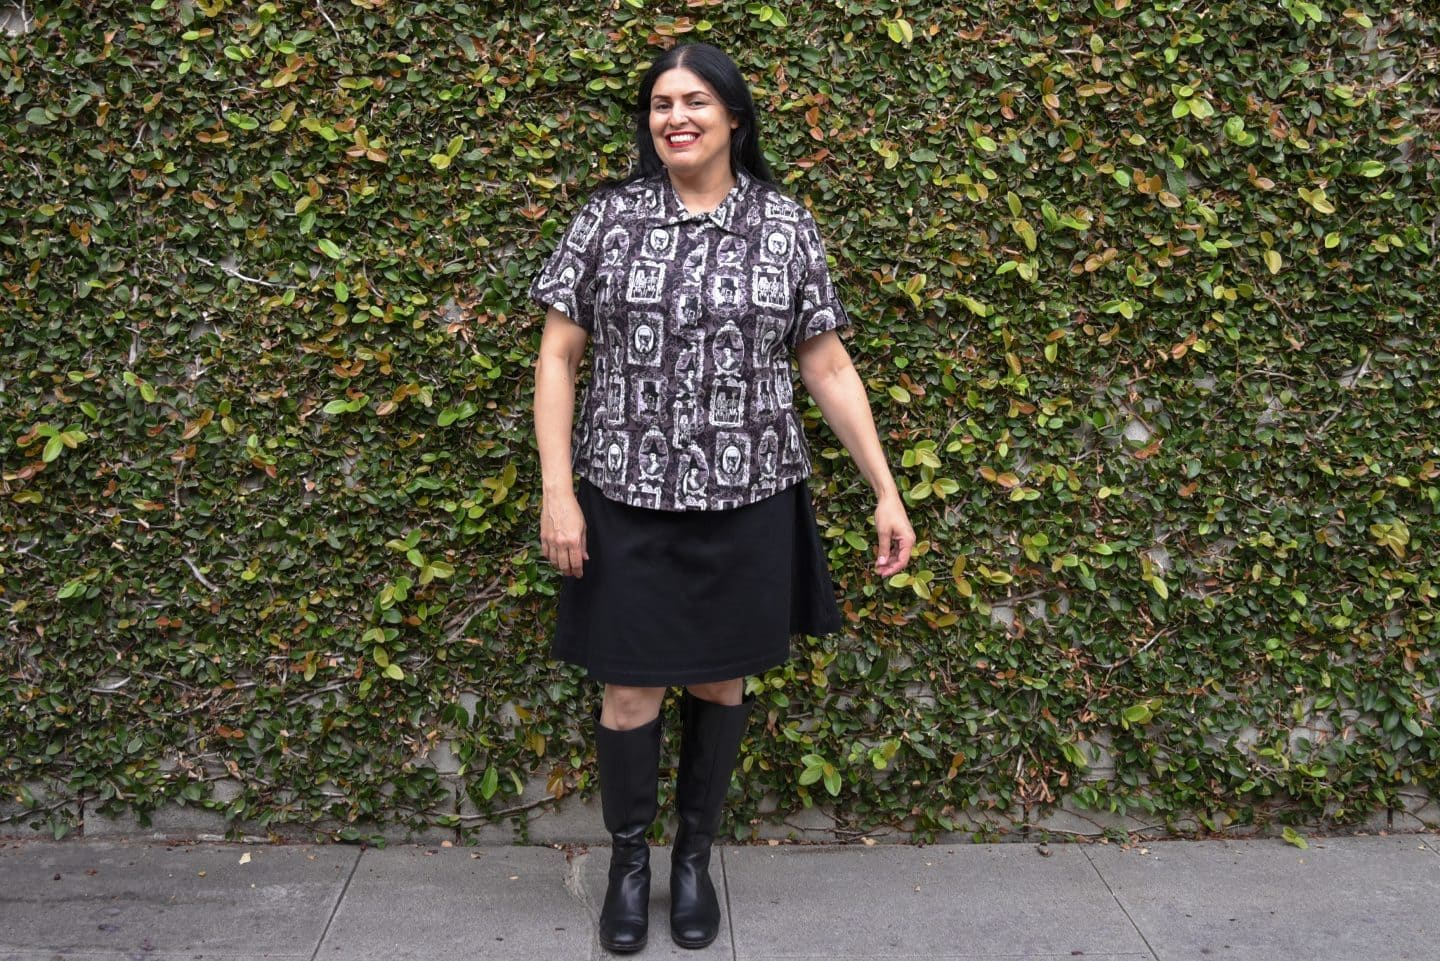 Image of a woman with long black hair standing in front of a wall covered in vine wearing a short-sleeved buttoned up shirt with a purple, black, and white print of skeletons in picture frames, black knee-length skirt, and black boots to her knees